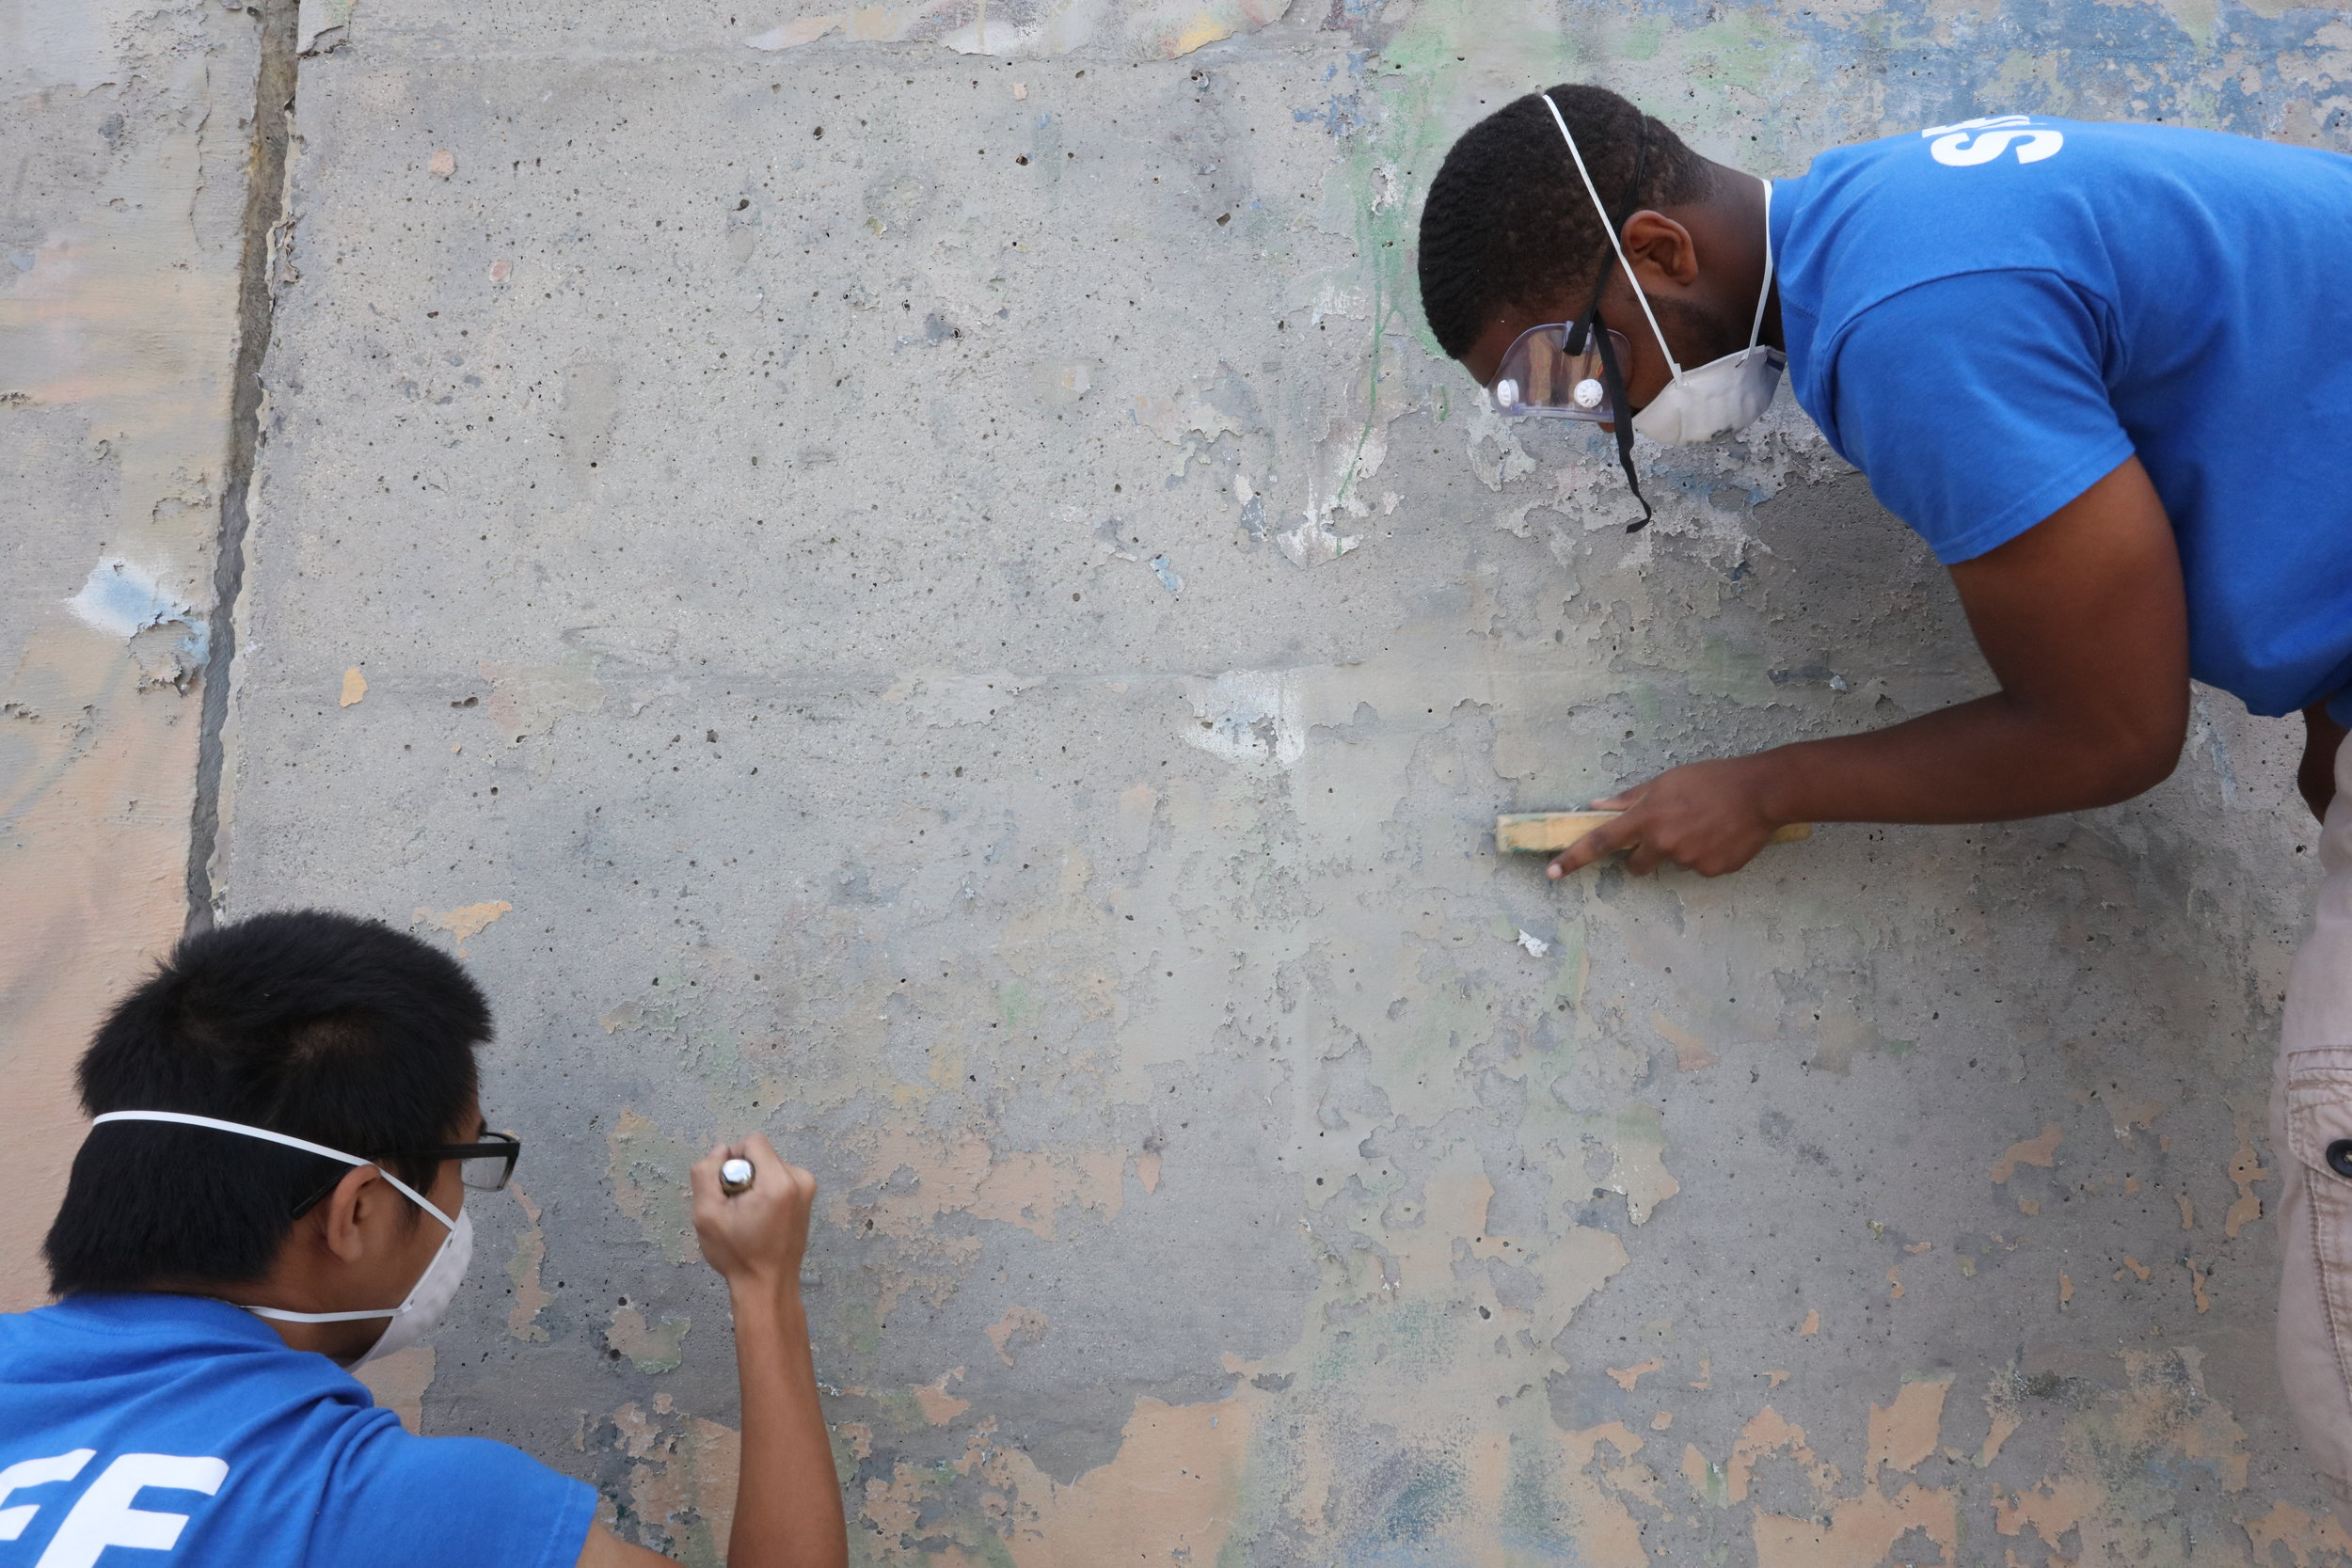 Volunteers from the Espanade Association help scrape the wall before painting on  Patterned Behavior.